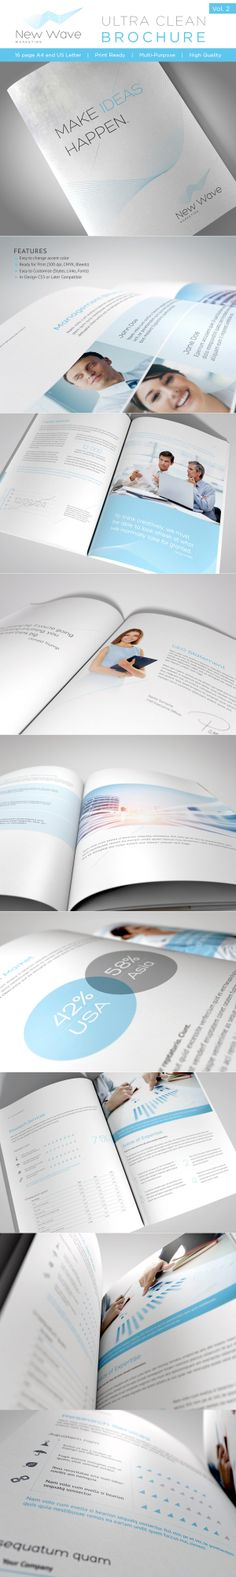 This is a 16 page professional In-Design brochure perfect for corporate business that needs clean, professional, modern brochure template design.Easy to edit, you can change blue accent color throughout the whole document at once, paragraph and characte… Brochure Examples, Design Brochure, Company Brochure, Indesign Templates, Print Templates, Brochure Template, Print Design, Graphic Design, Print Print